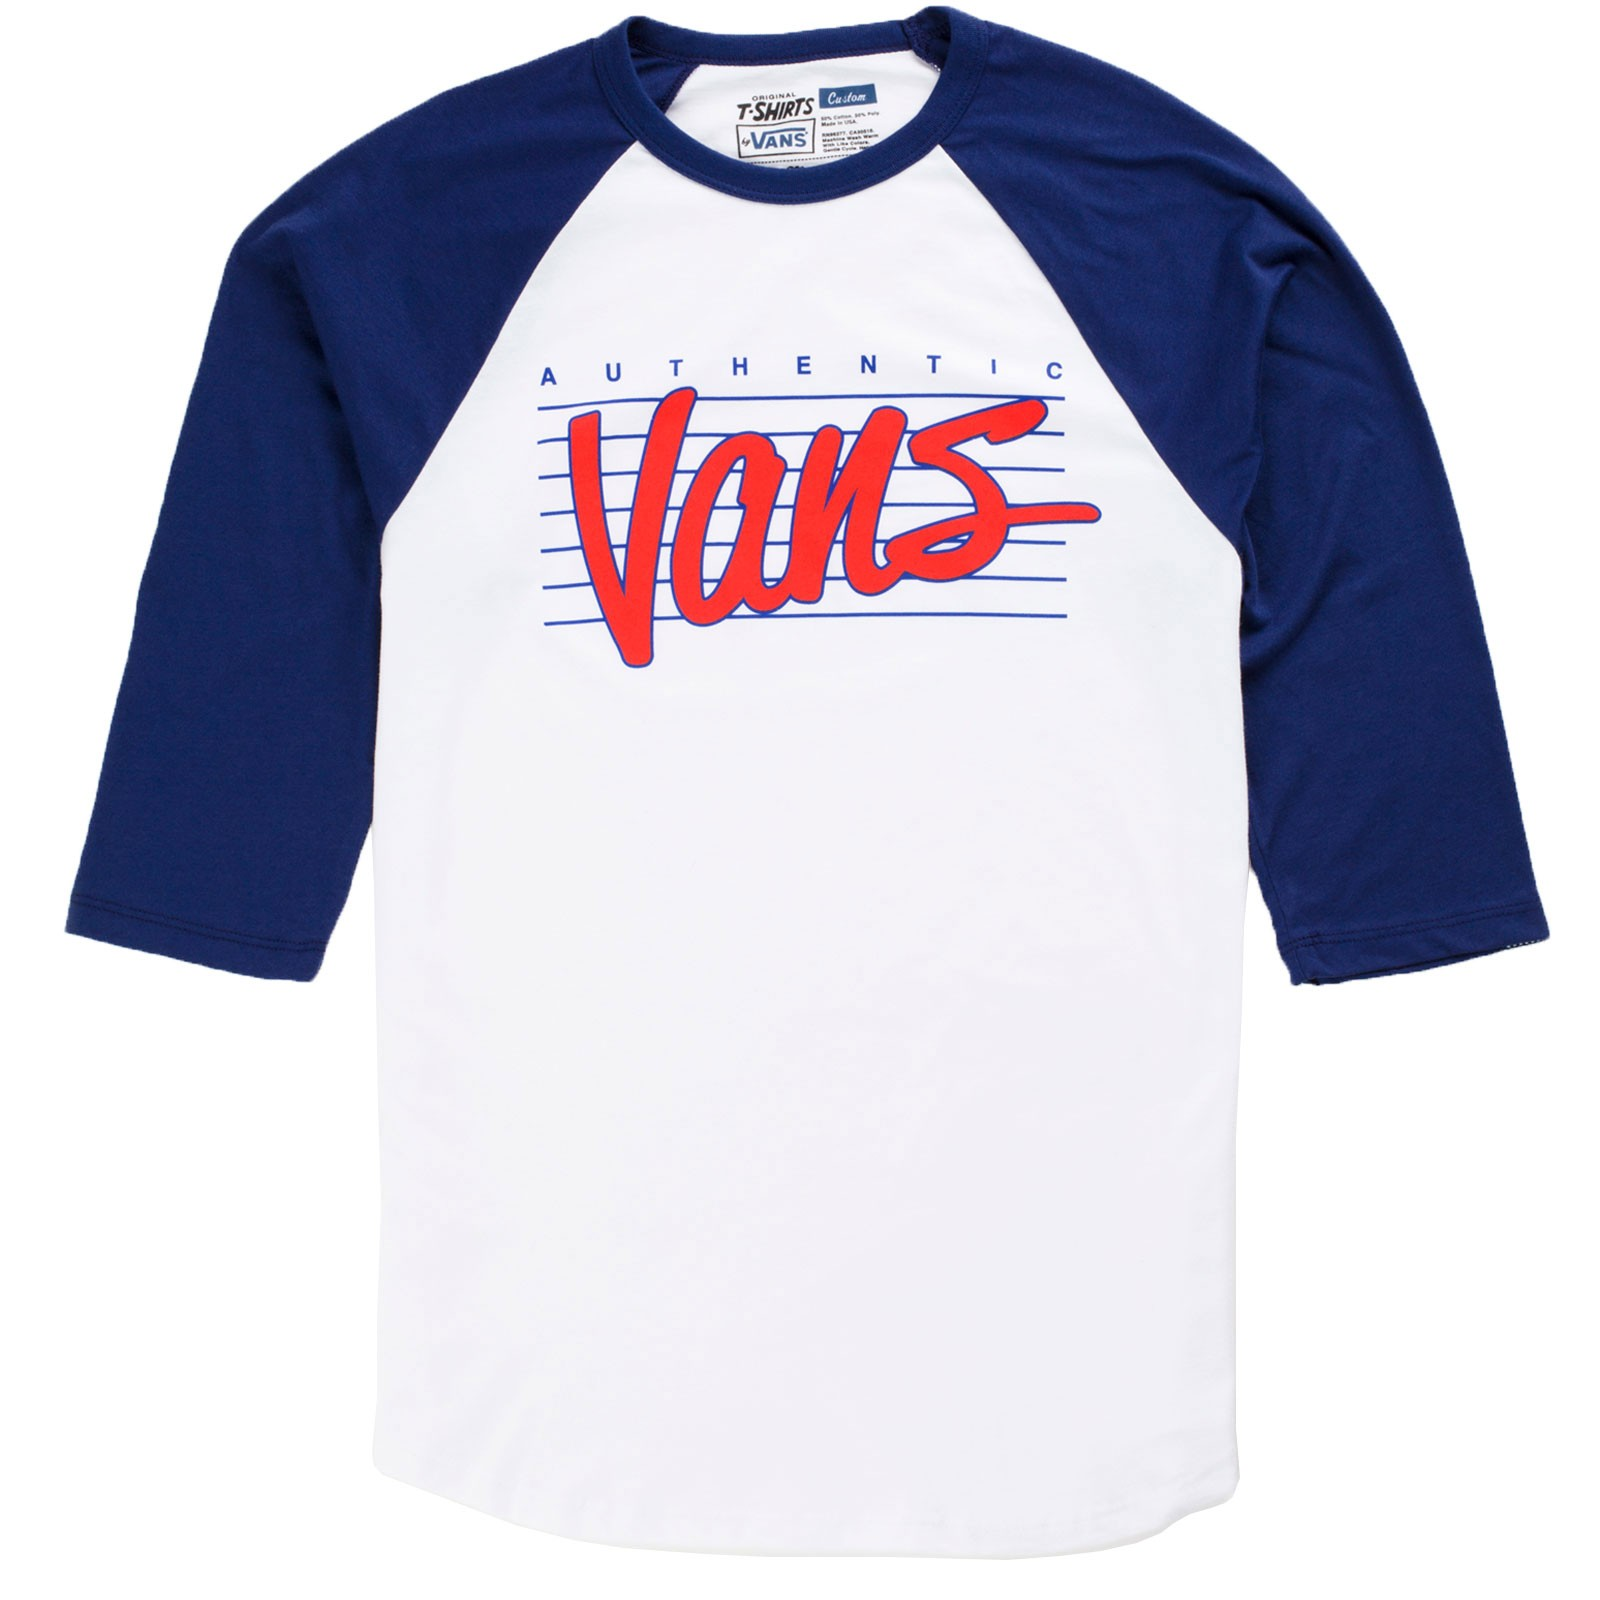 Vans Authentic Raglan Youth Shirt - White / Blueprint